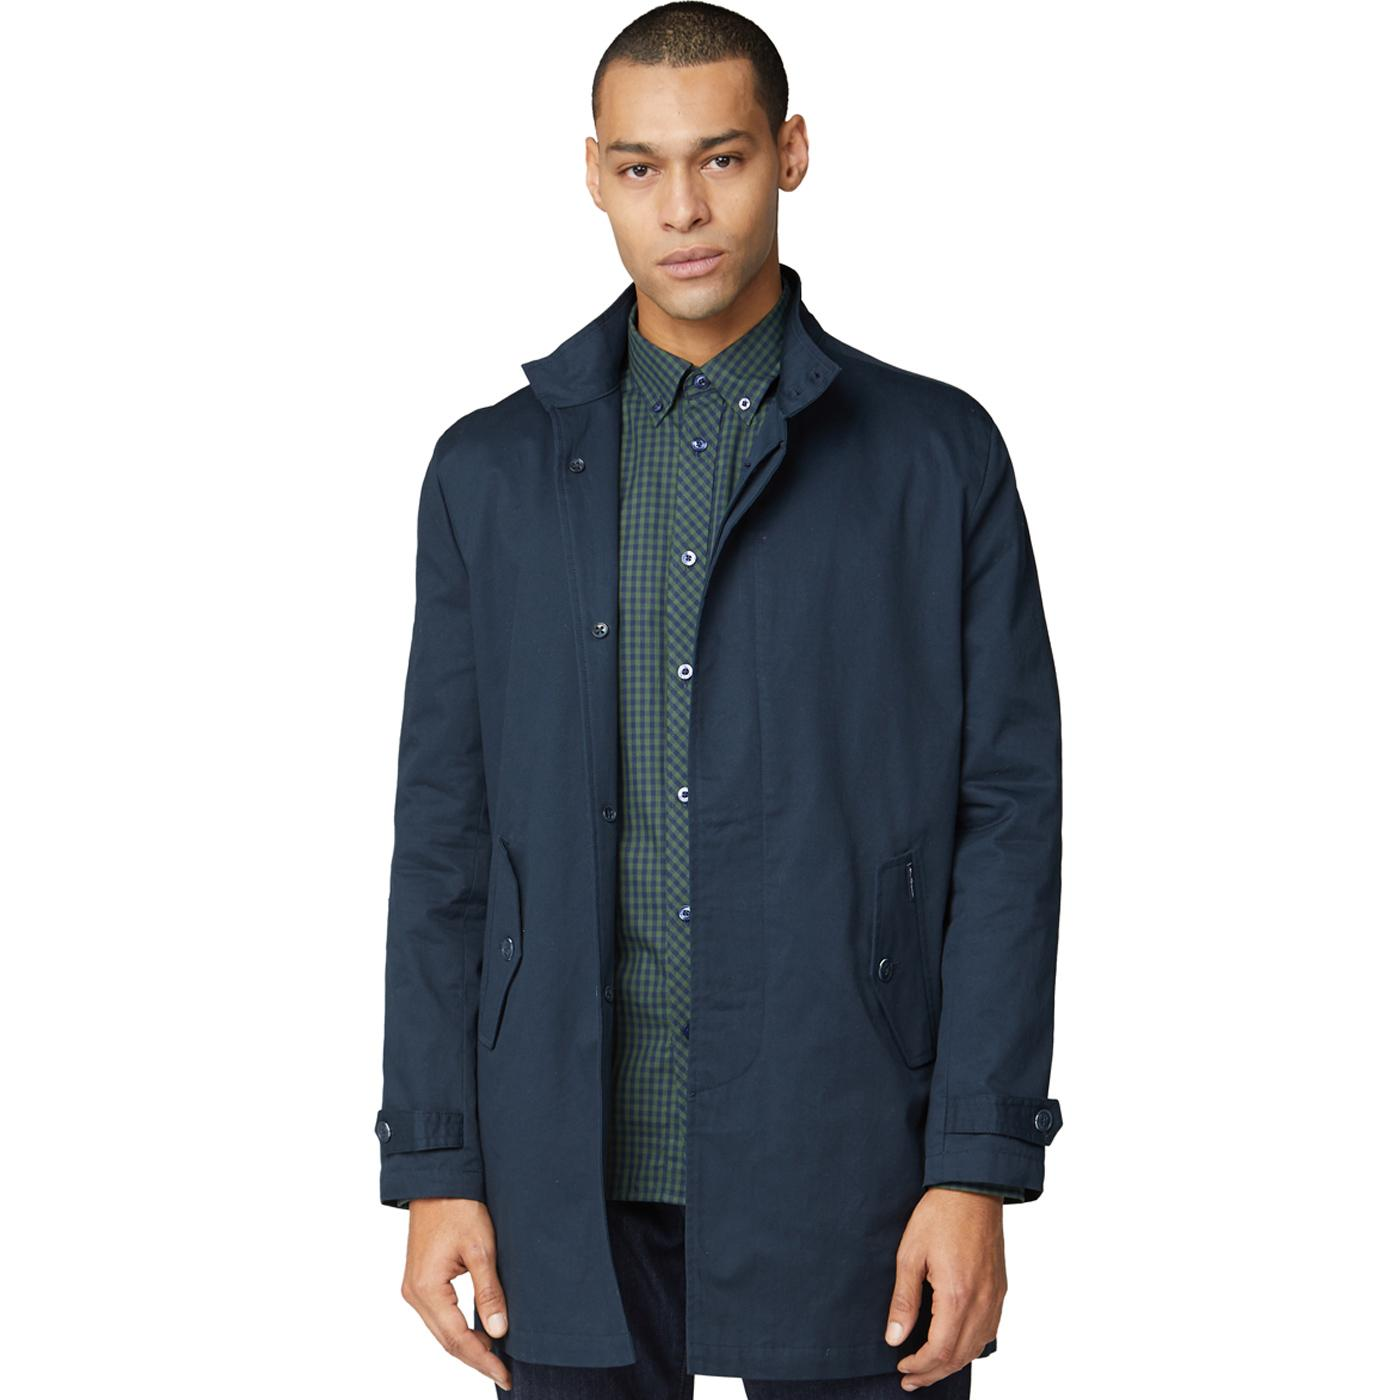 Harrimac BEN SHERMAN Mod Harrington Mac Jacket DN